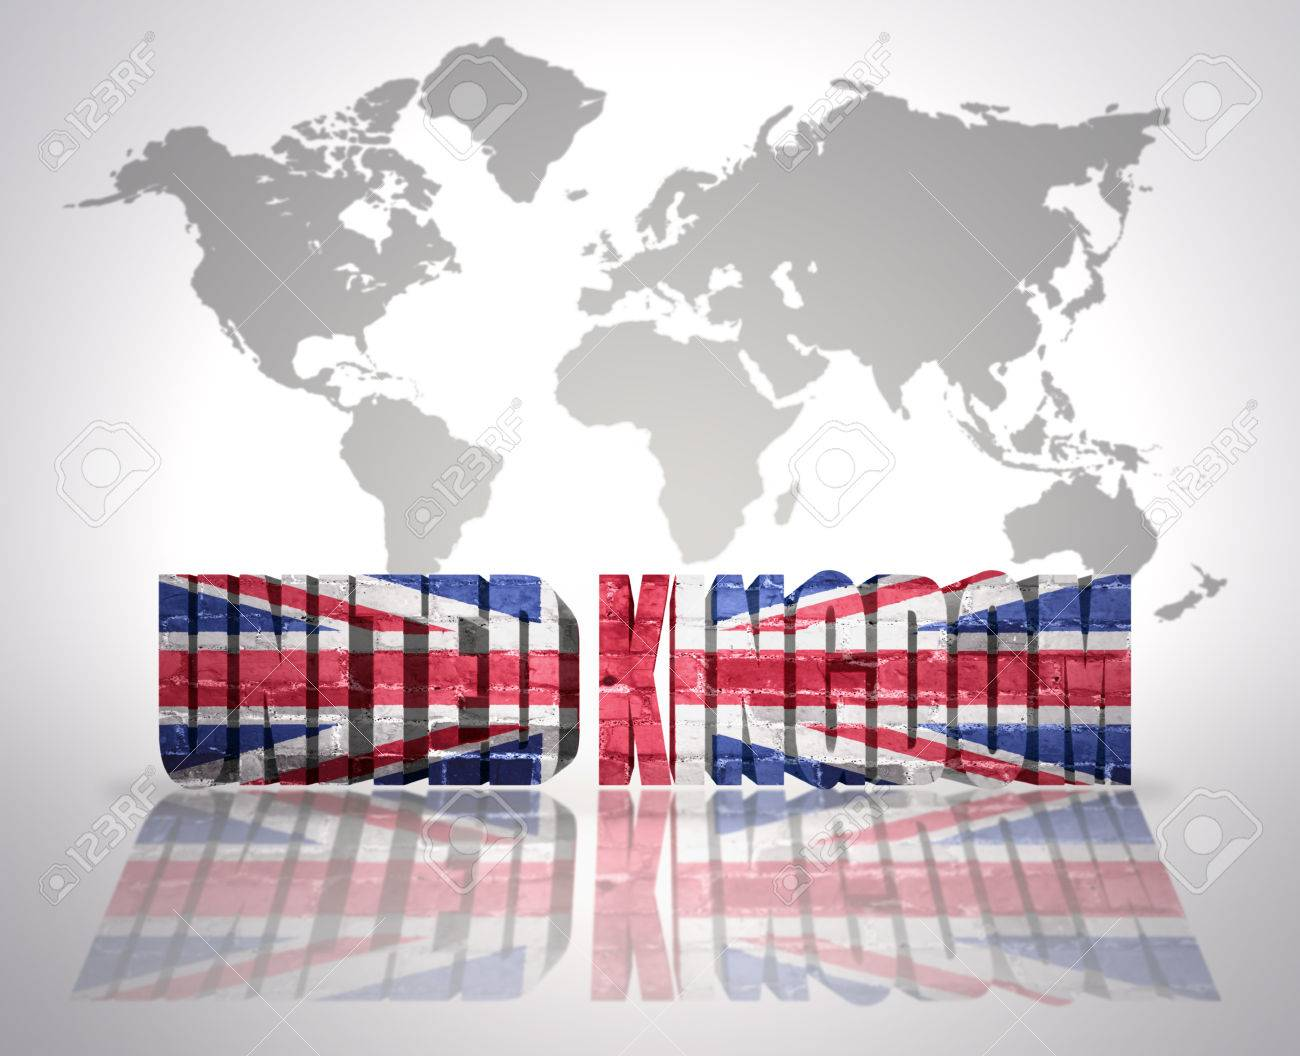 Word united kingdom with uk flag on a world map background stock stock photo word united kingdom with uk flag on a world map background gumiabroncs Gallery